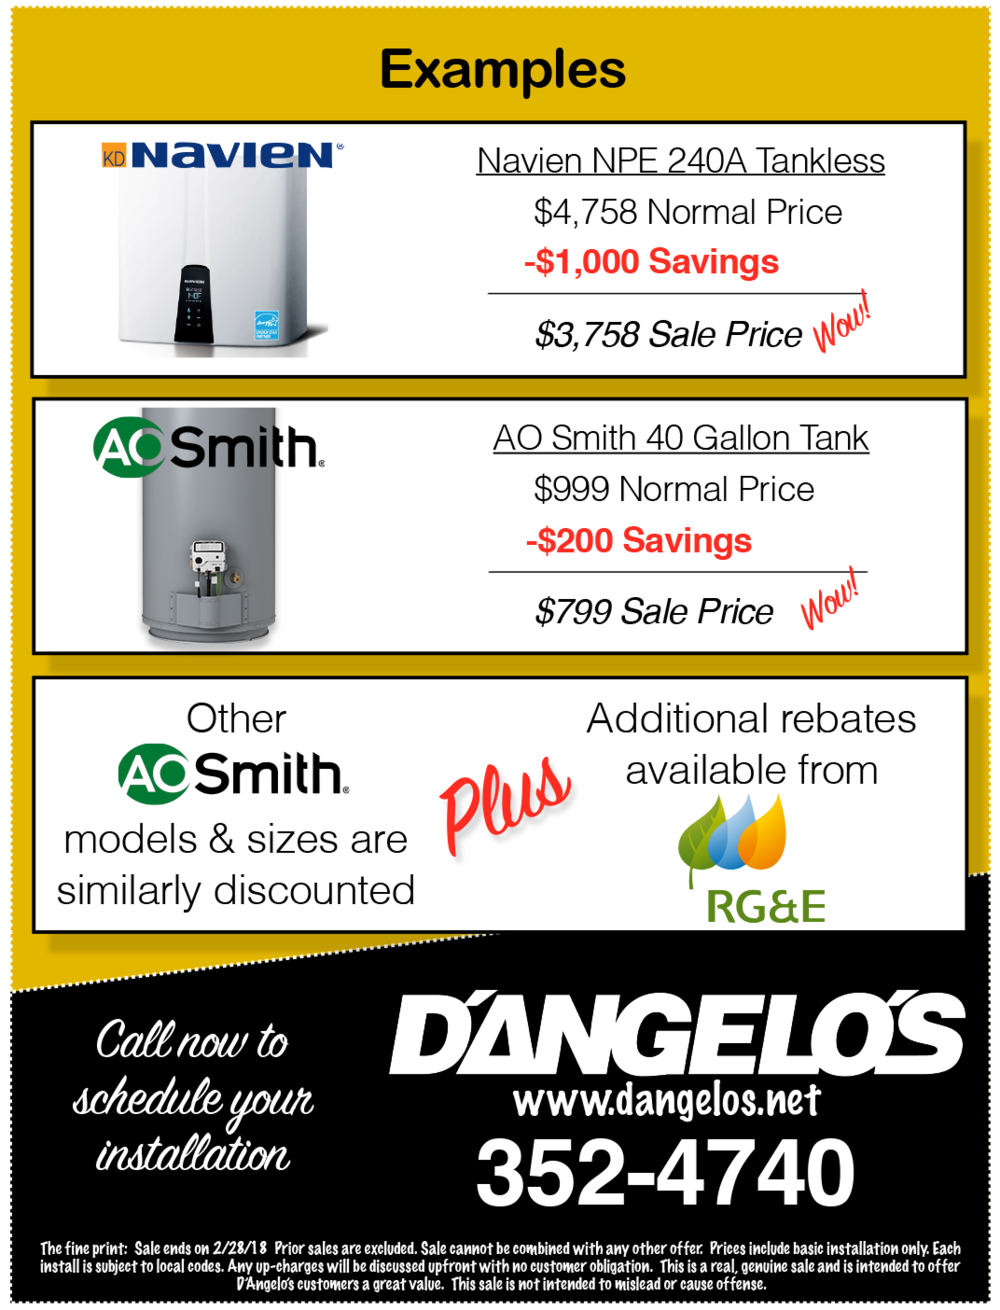 2018 water heater sale pg2.png